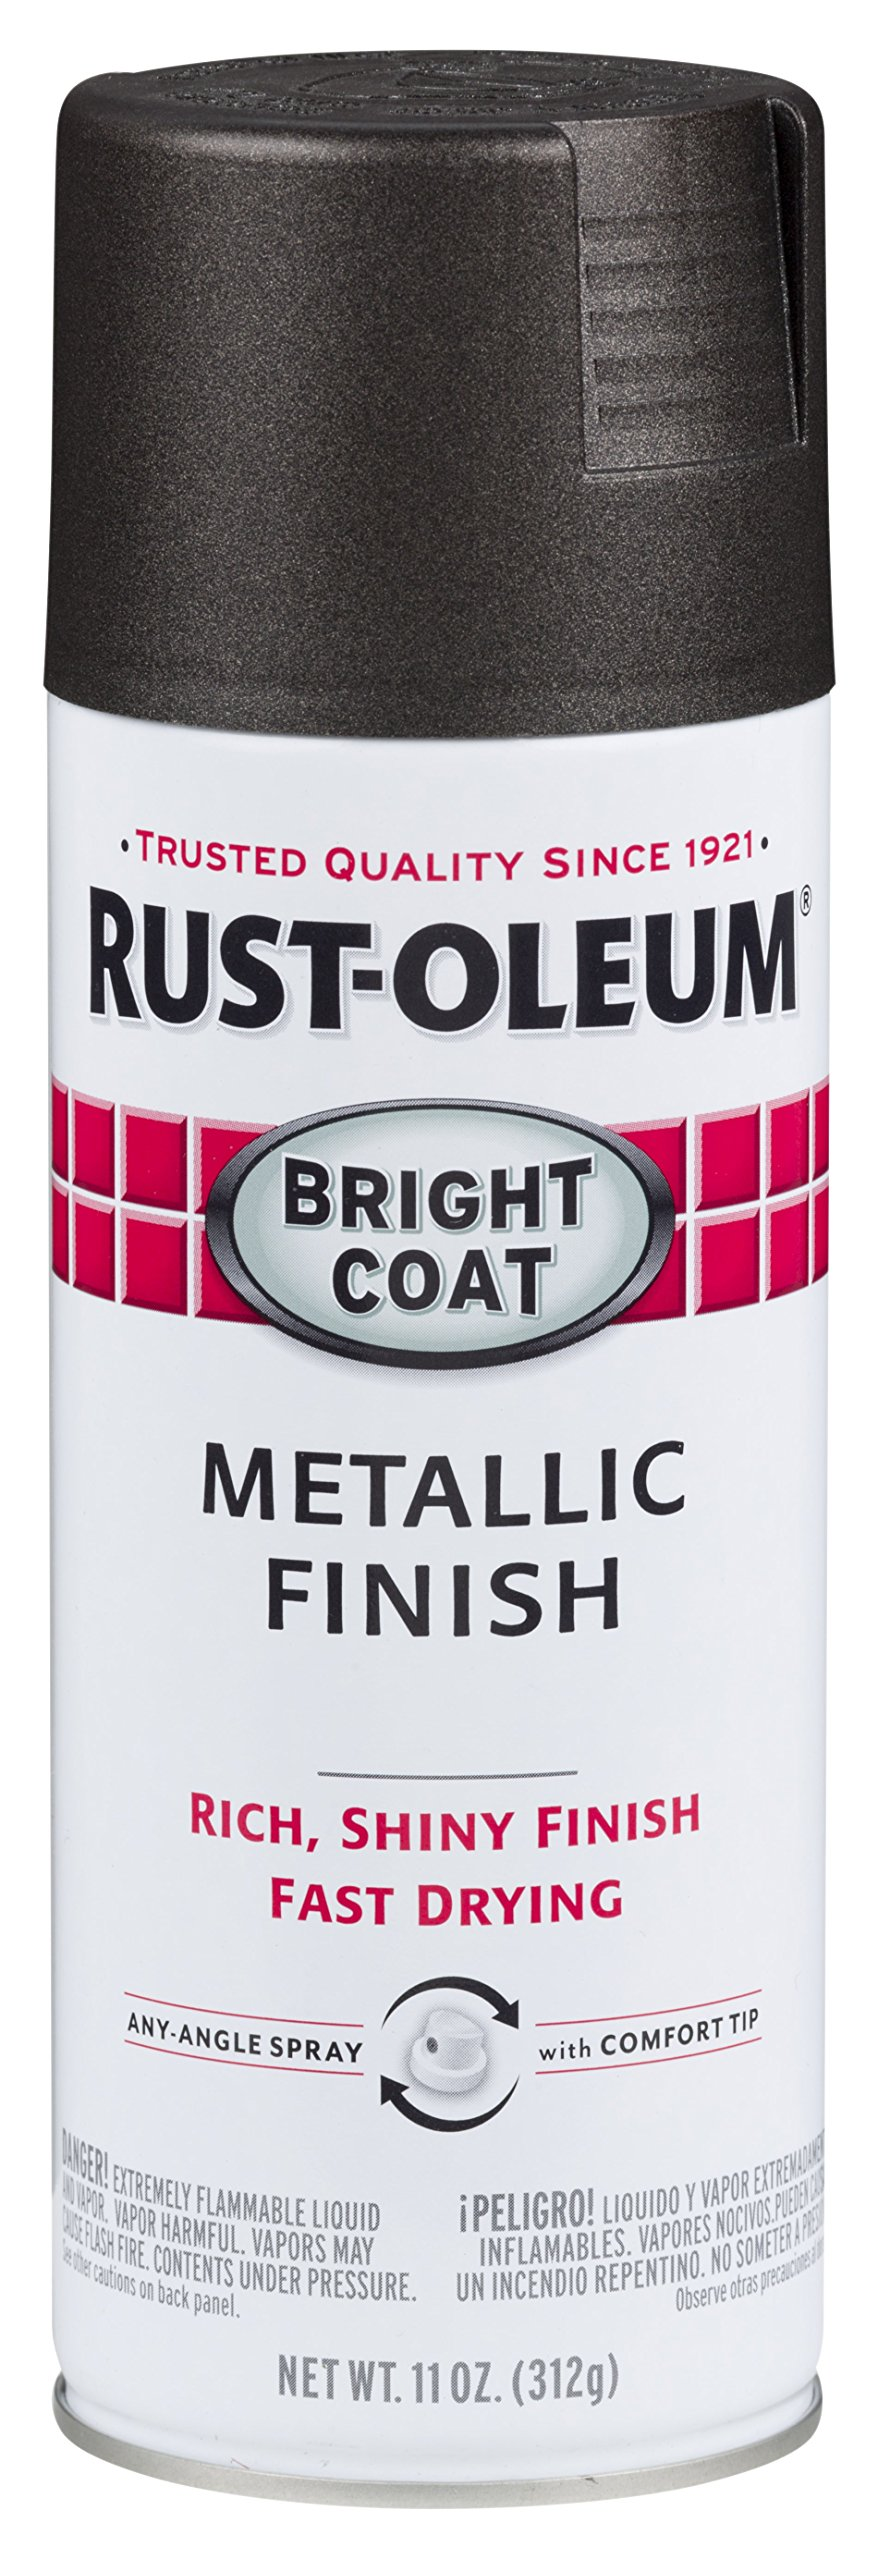 Rust-Oleum 7713830-6 PK Stops Bright Coat Spray 7713830-6 PK Bright Coat Metallic Color Spray, 11 Oz, Dark Bronze, 6 Pack, Metallic Dark Bronze